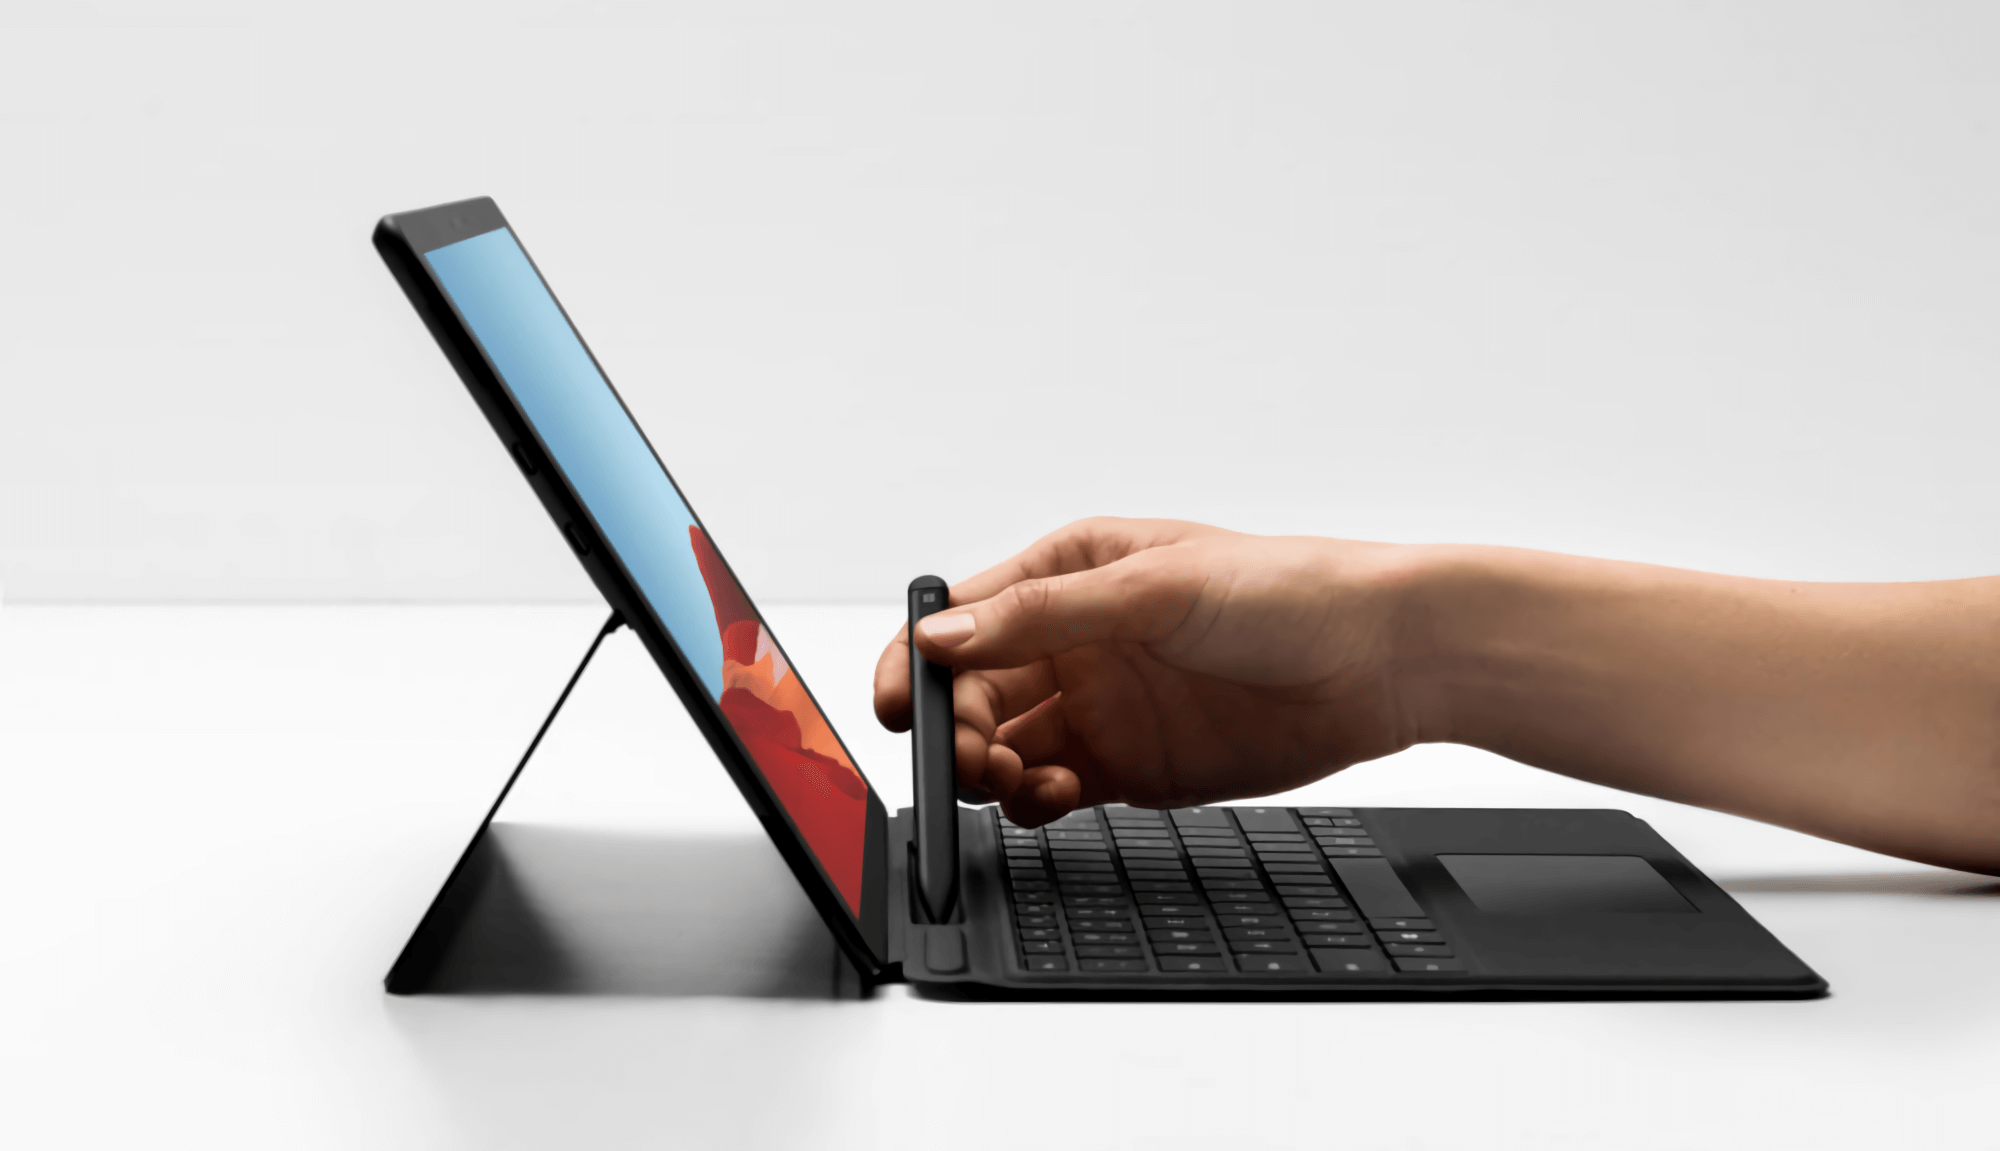 Microsoft and AMD could bring Radeon graphics to the next Surface Pro X